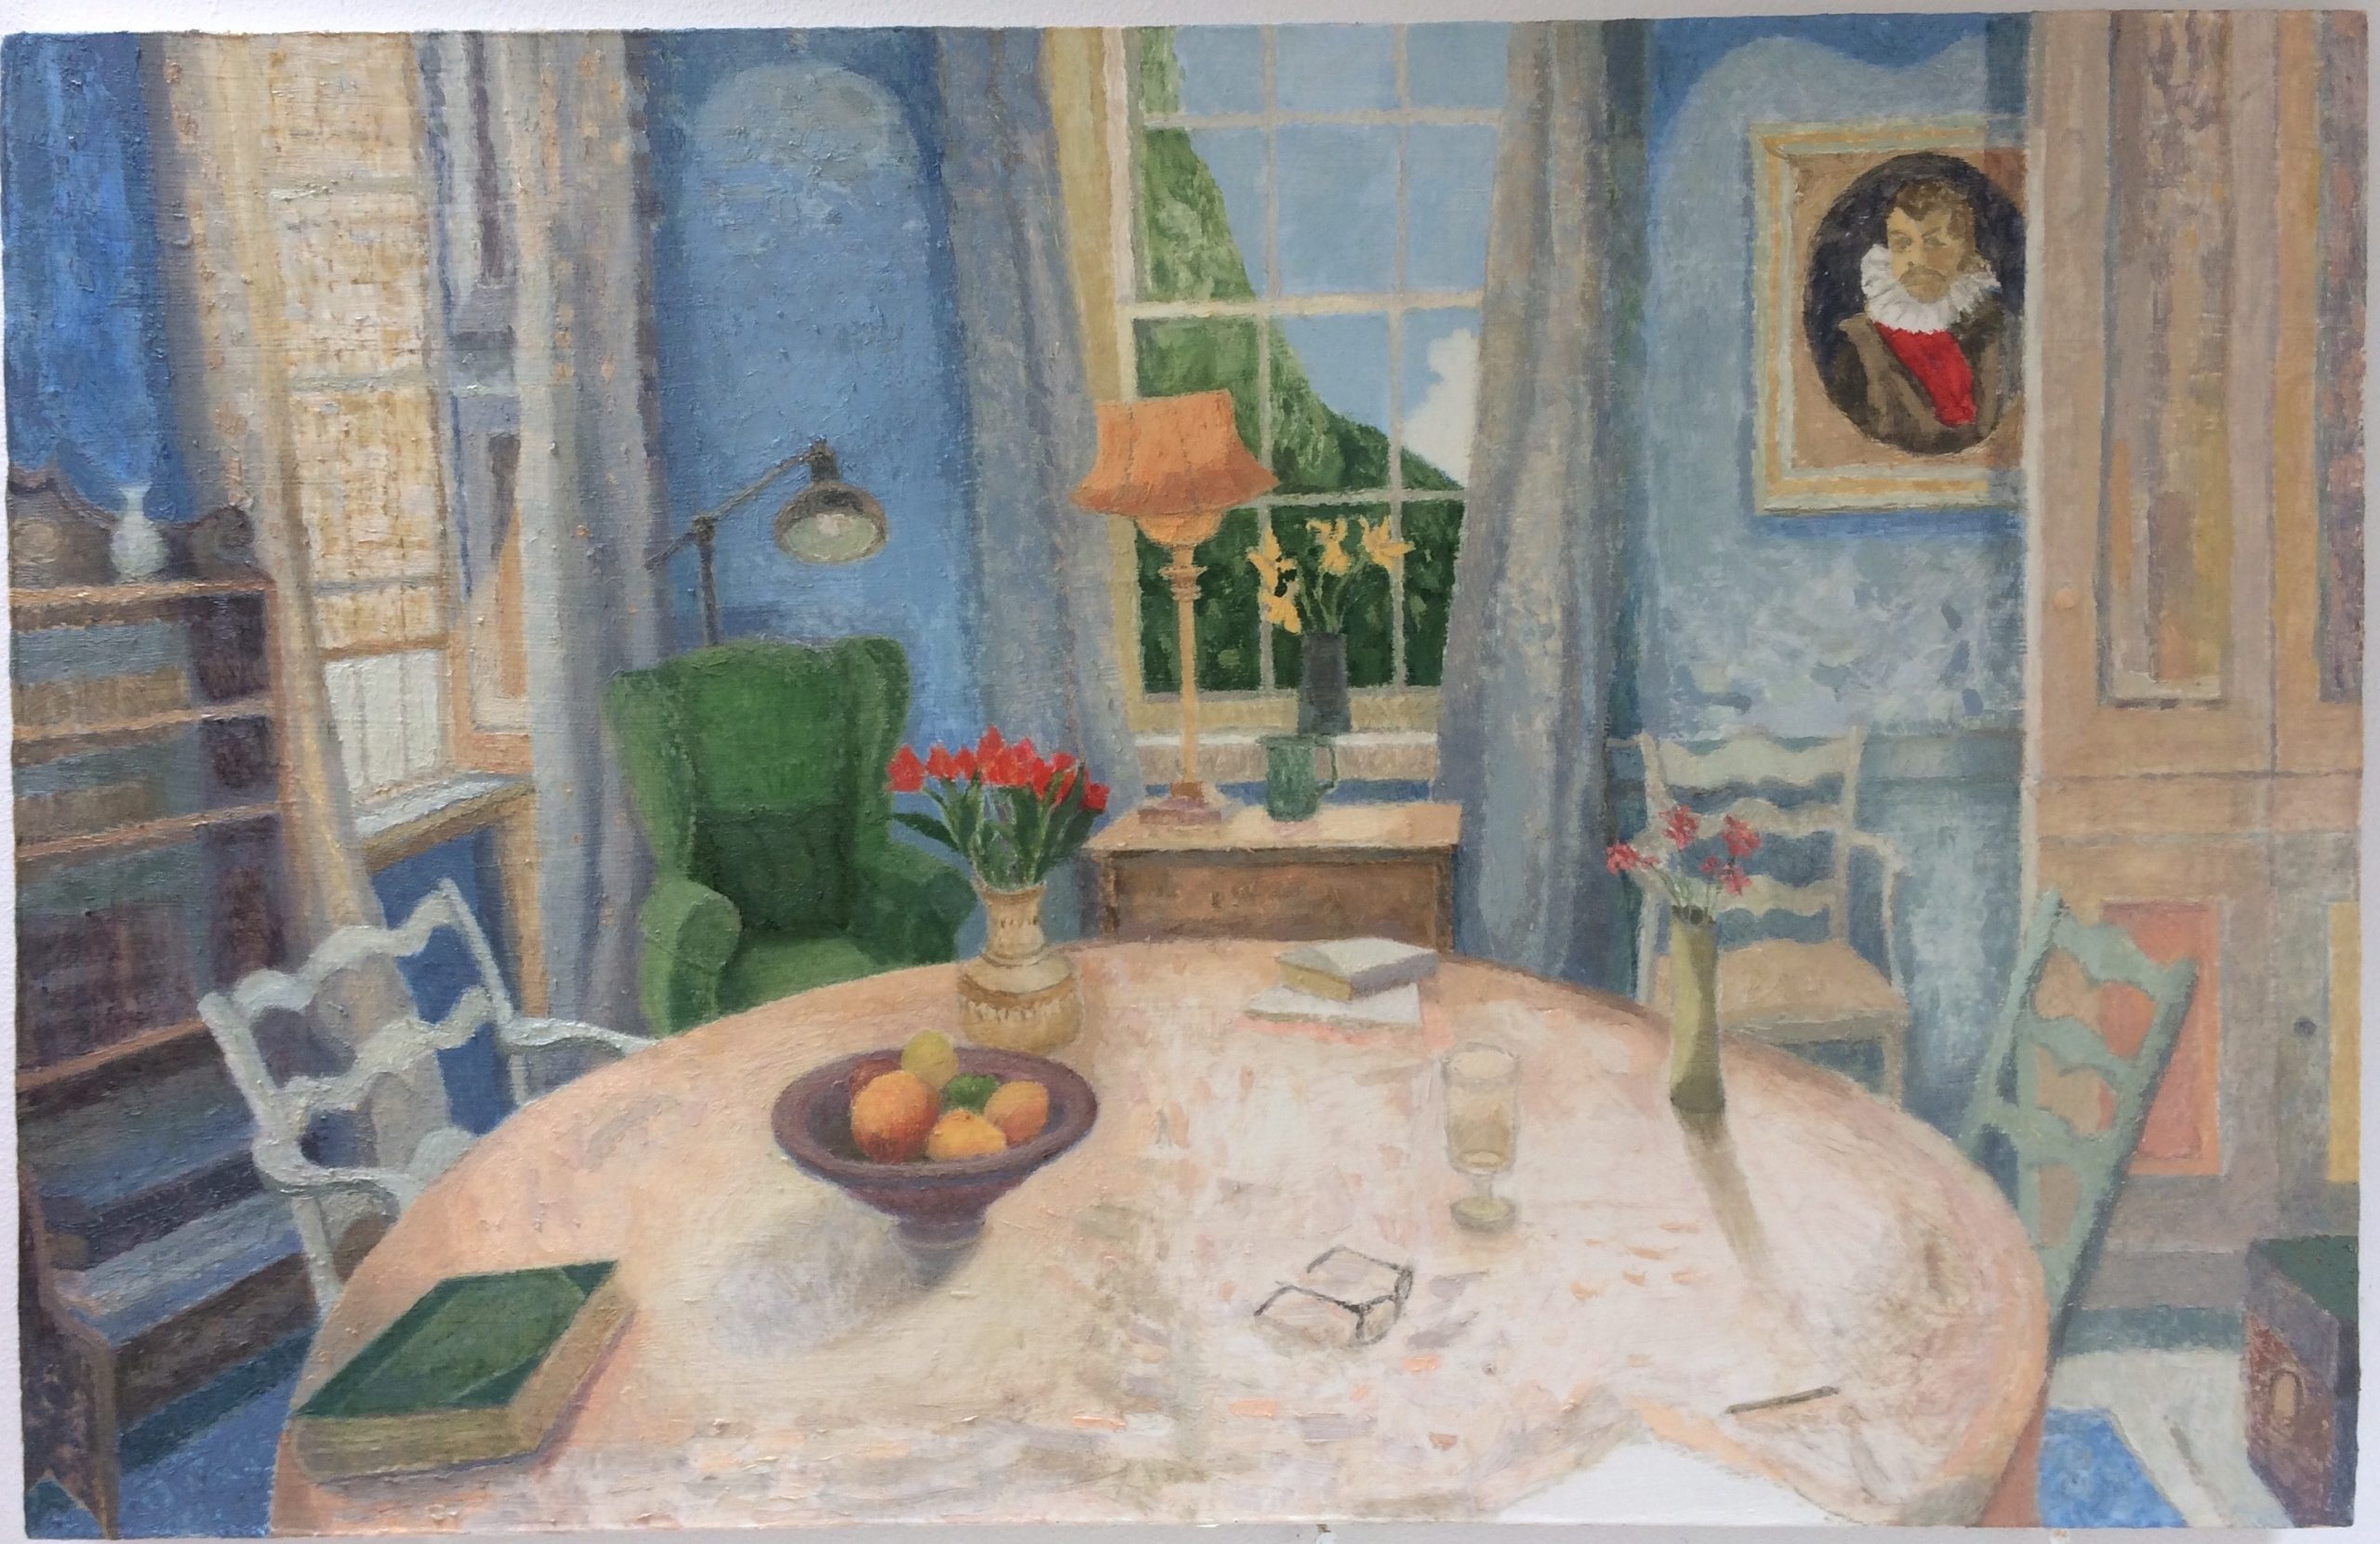 Dining Room, oil on gesso panel, 2019-20